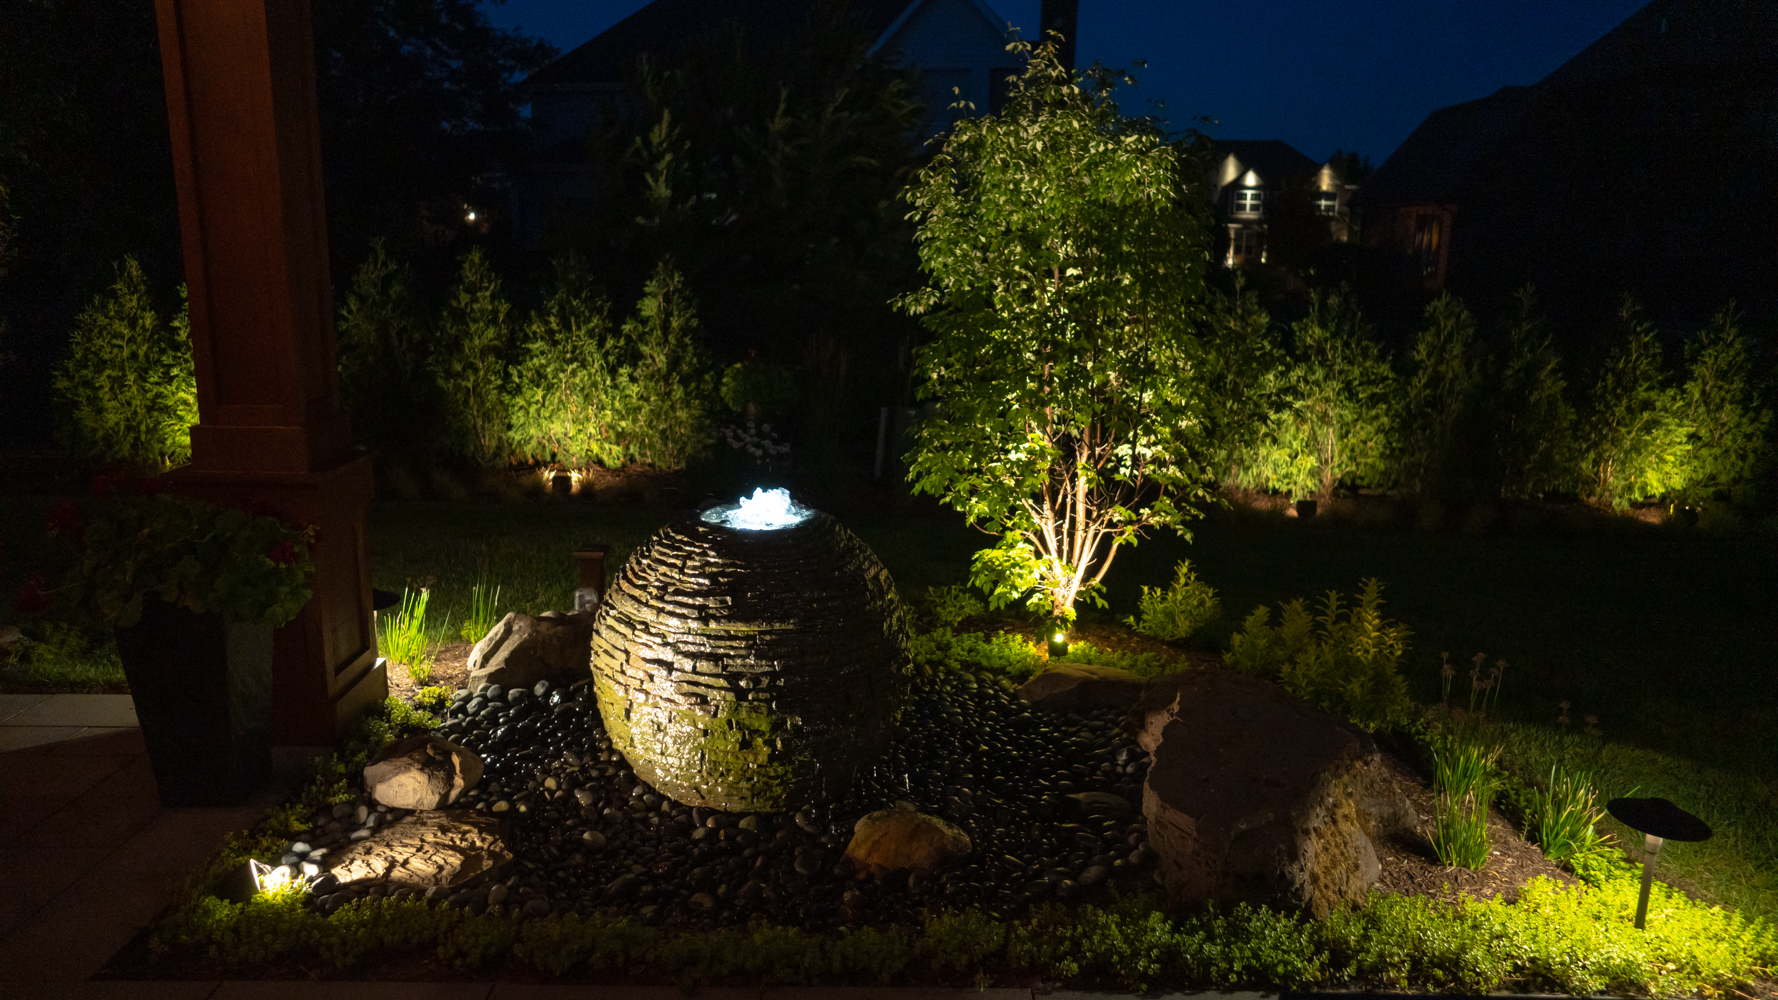 Landscape Lighting Installation Costs: Prices to Expect & How to Stick to Your Budget